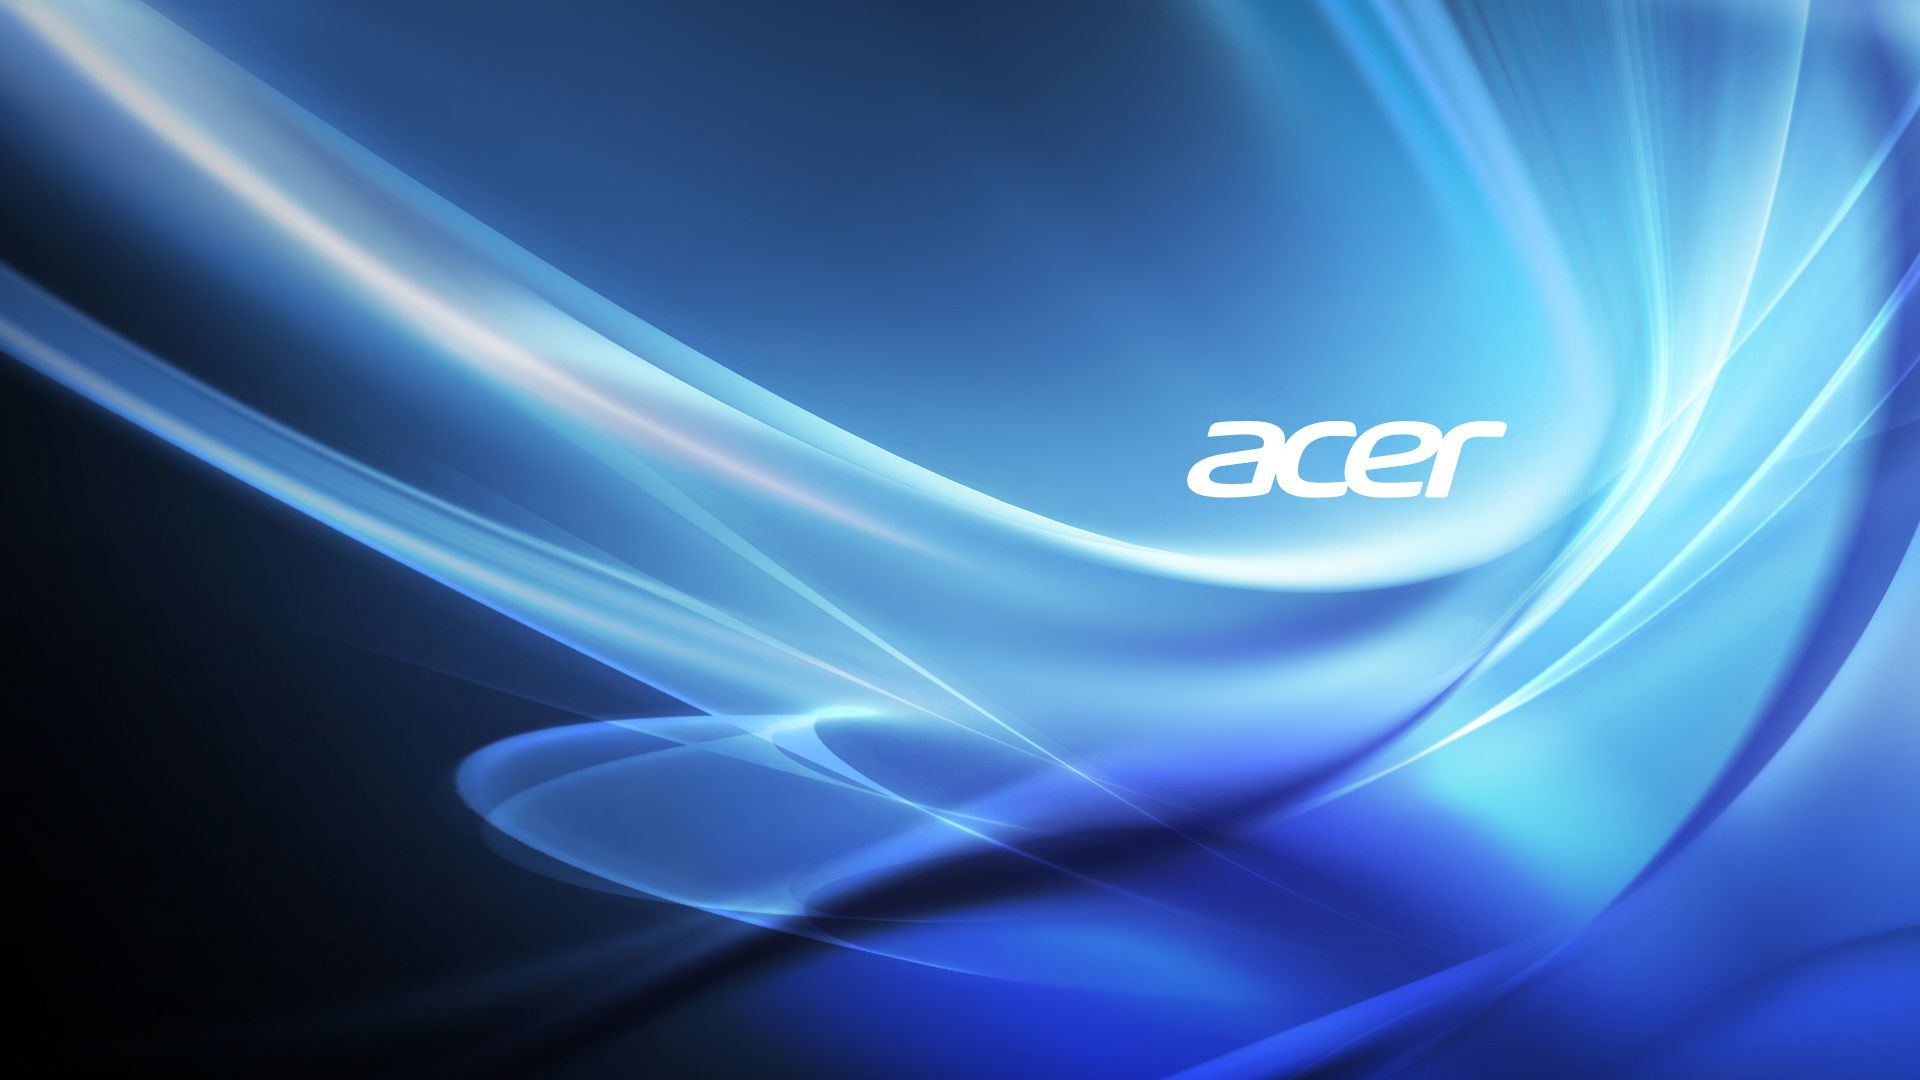 Acer Desktop Background Wallpaper | HD Wallpapers in 2019